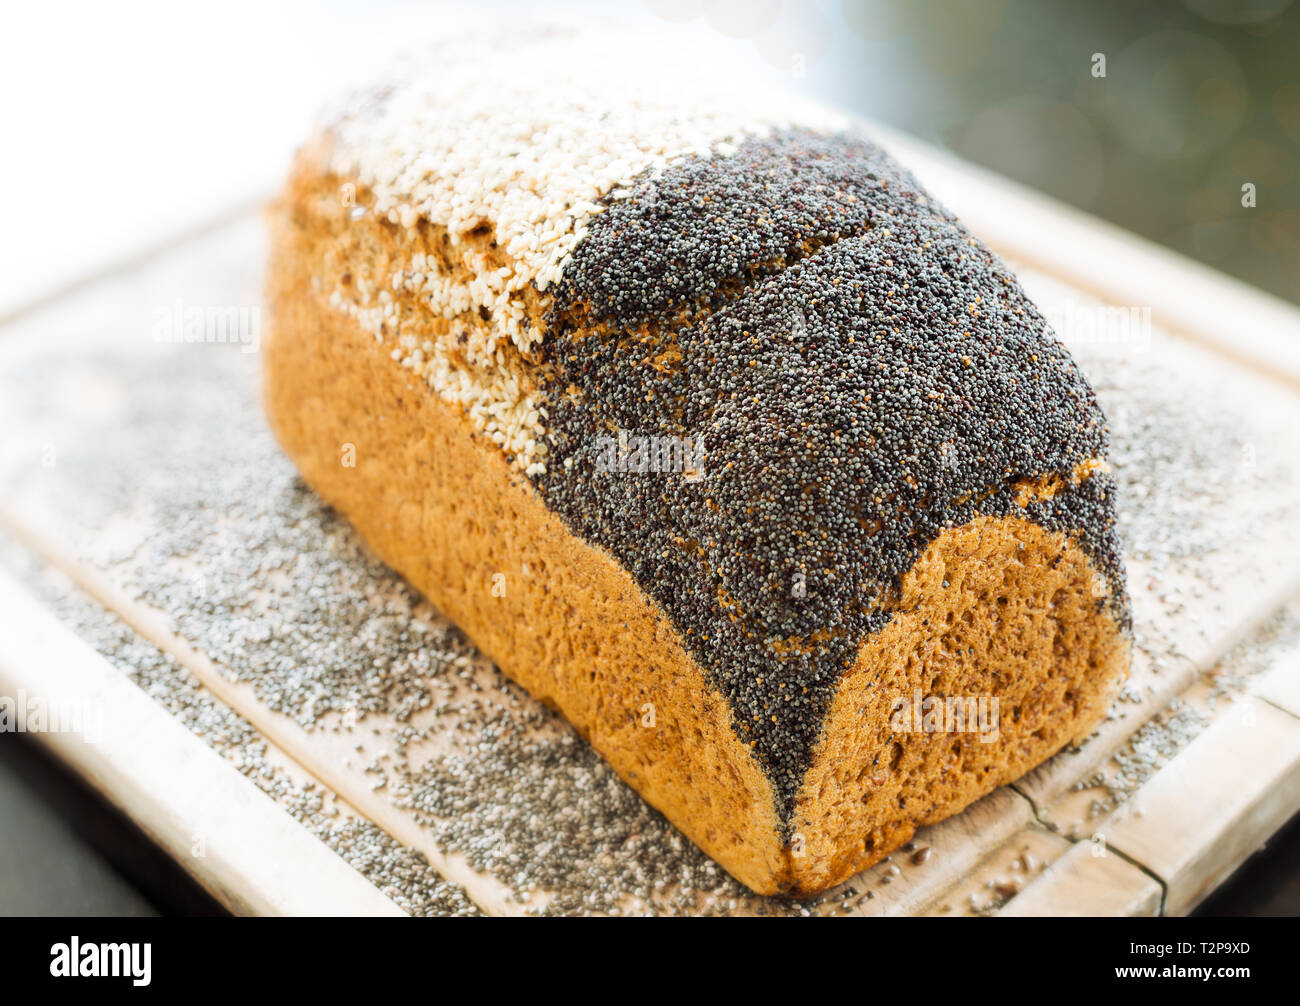 Bread with a crust of different seeds - Stock Image